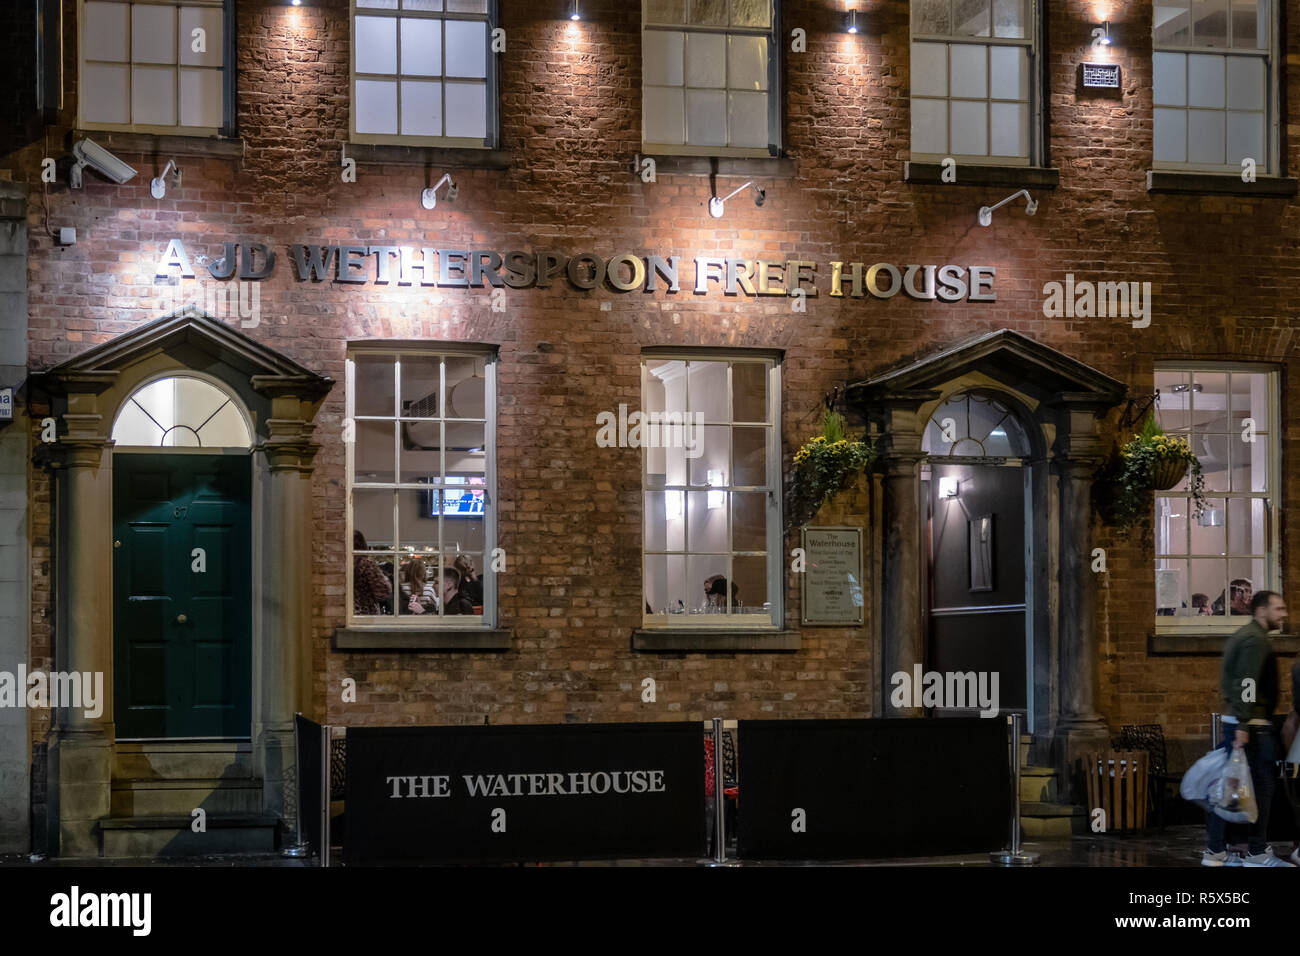 The Waterhouse, AJD Wetherspoons Free house in the evening on Princess street, Manchester, England Uk - Stock Image